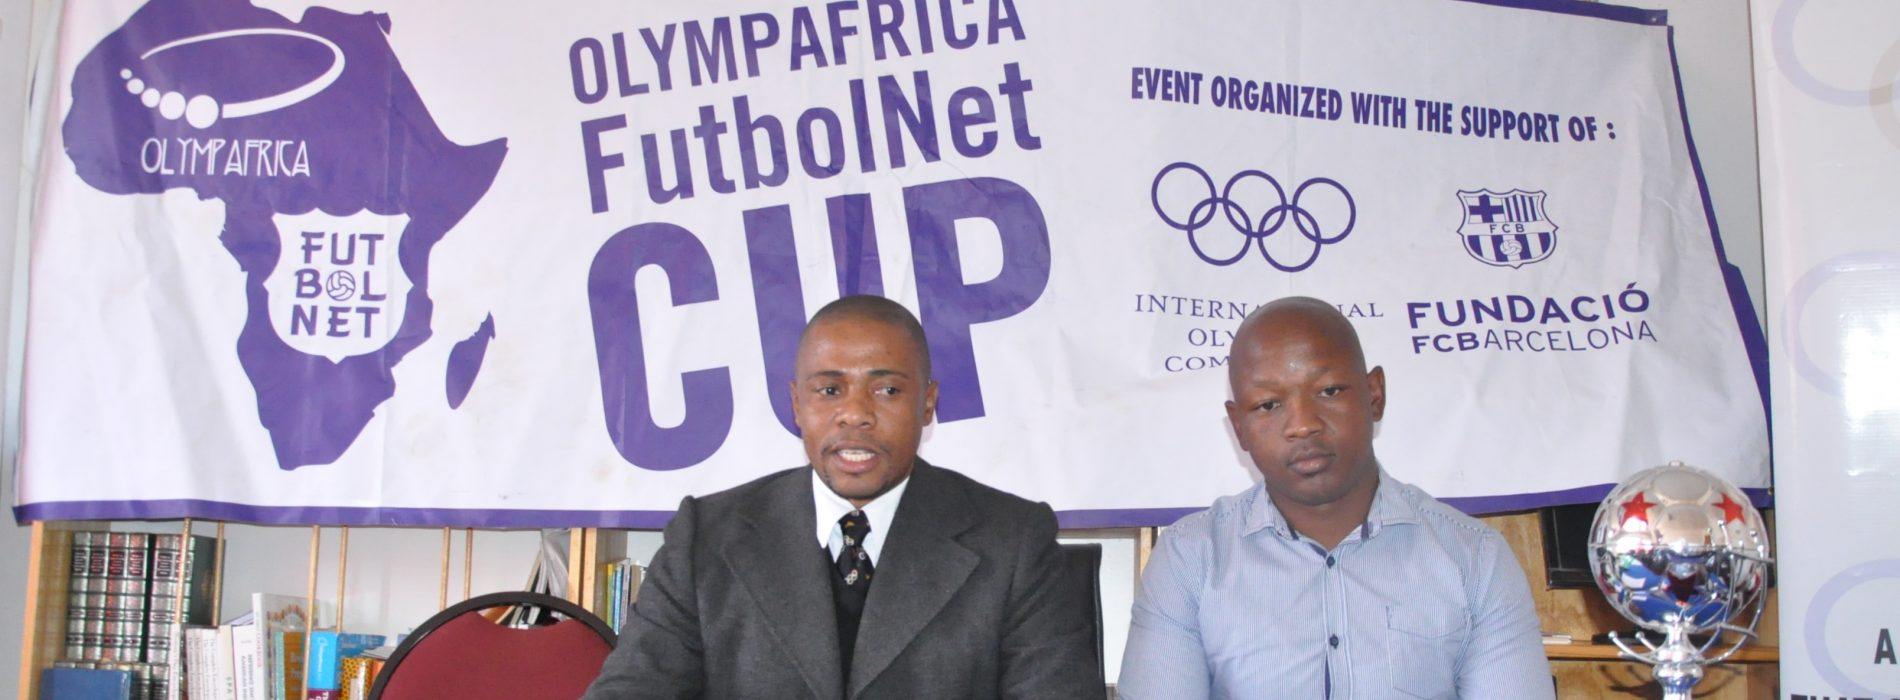 OlympAfrica Games begin